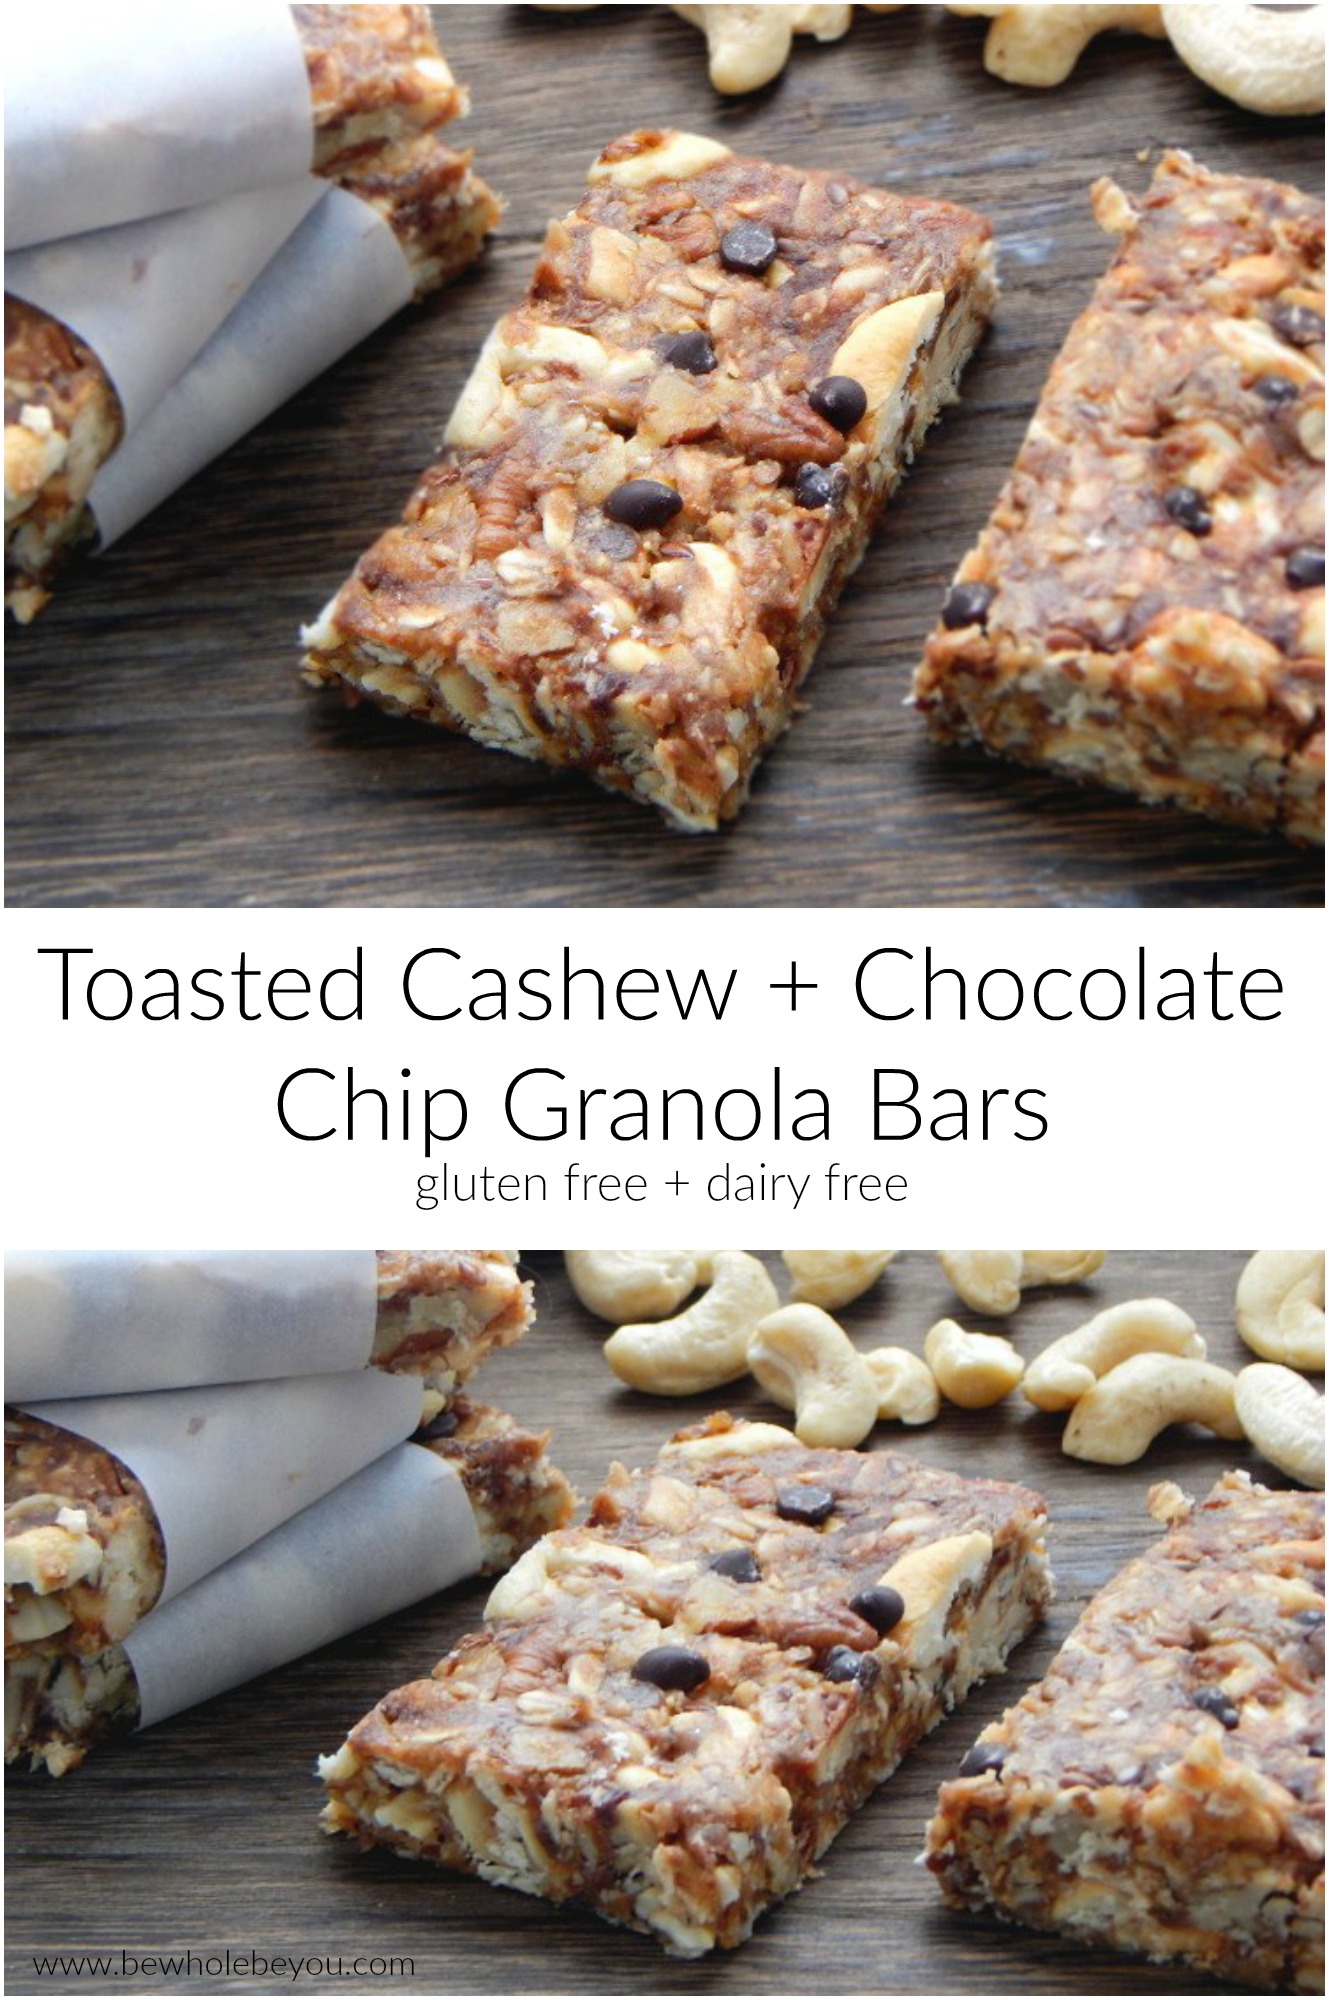 Toasted Cashew and Chocolate Chip Granola Bars